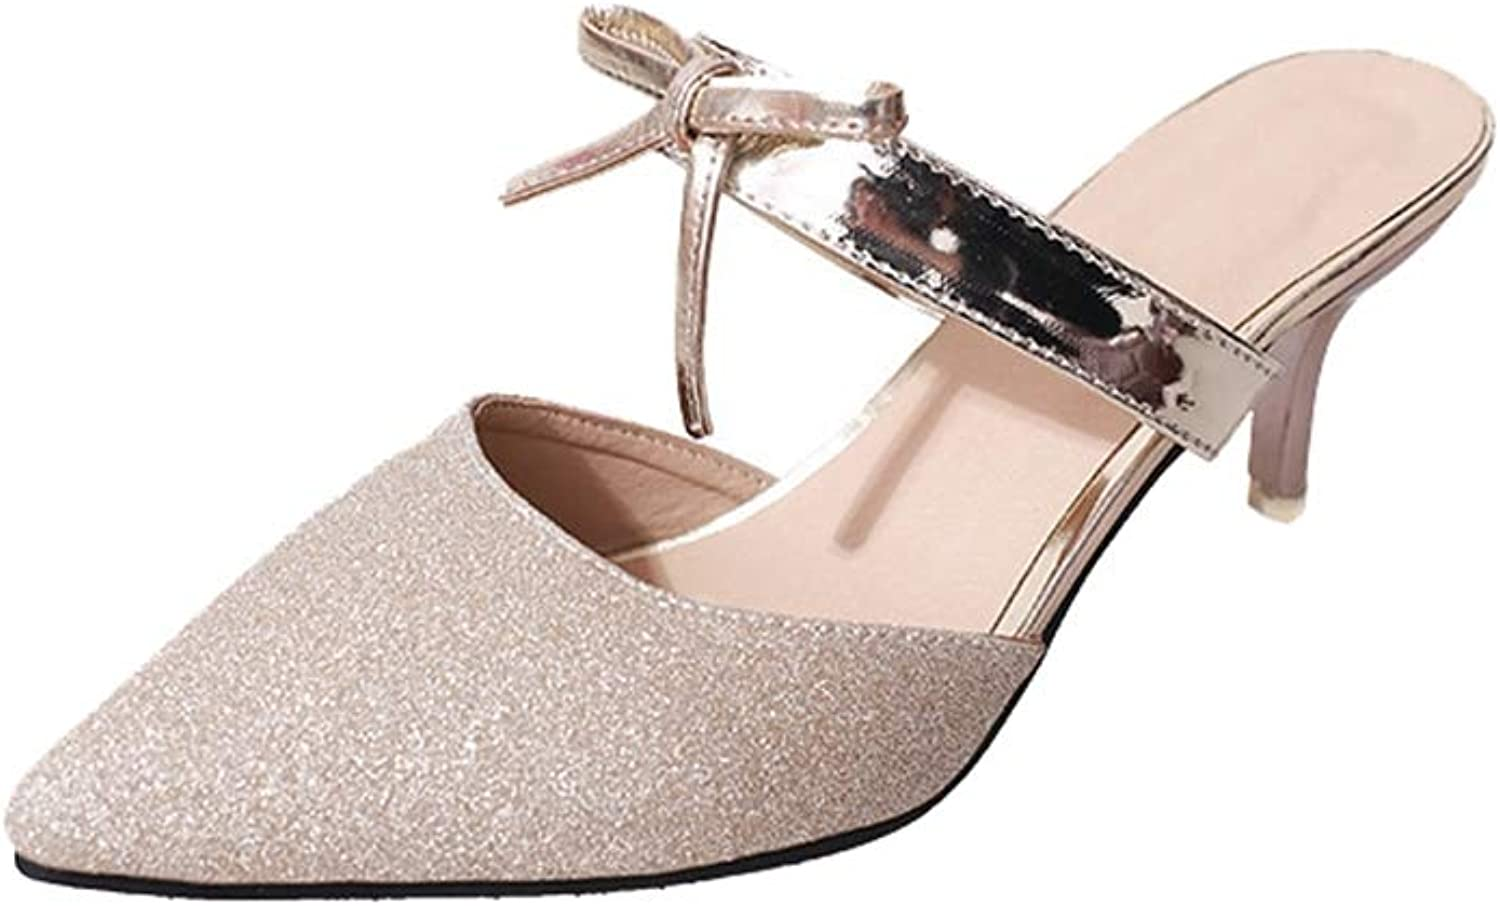 Phil Betty Women's Pumps,Closed Toe Sequined Ribbon Purple Silver Summer Sandals